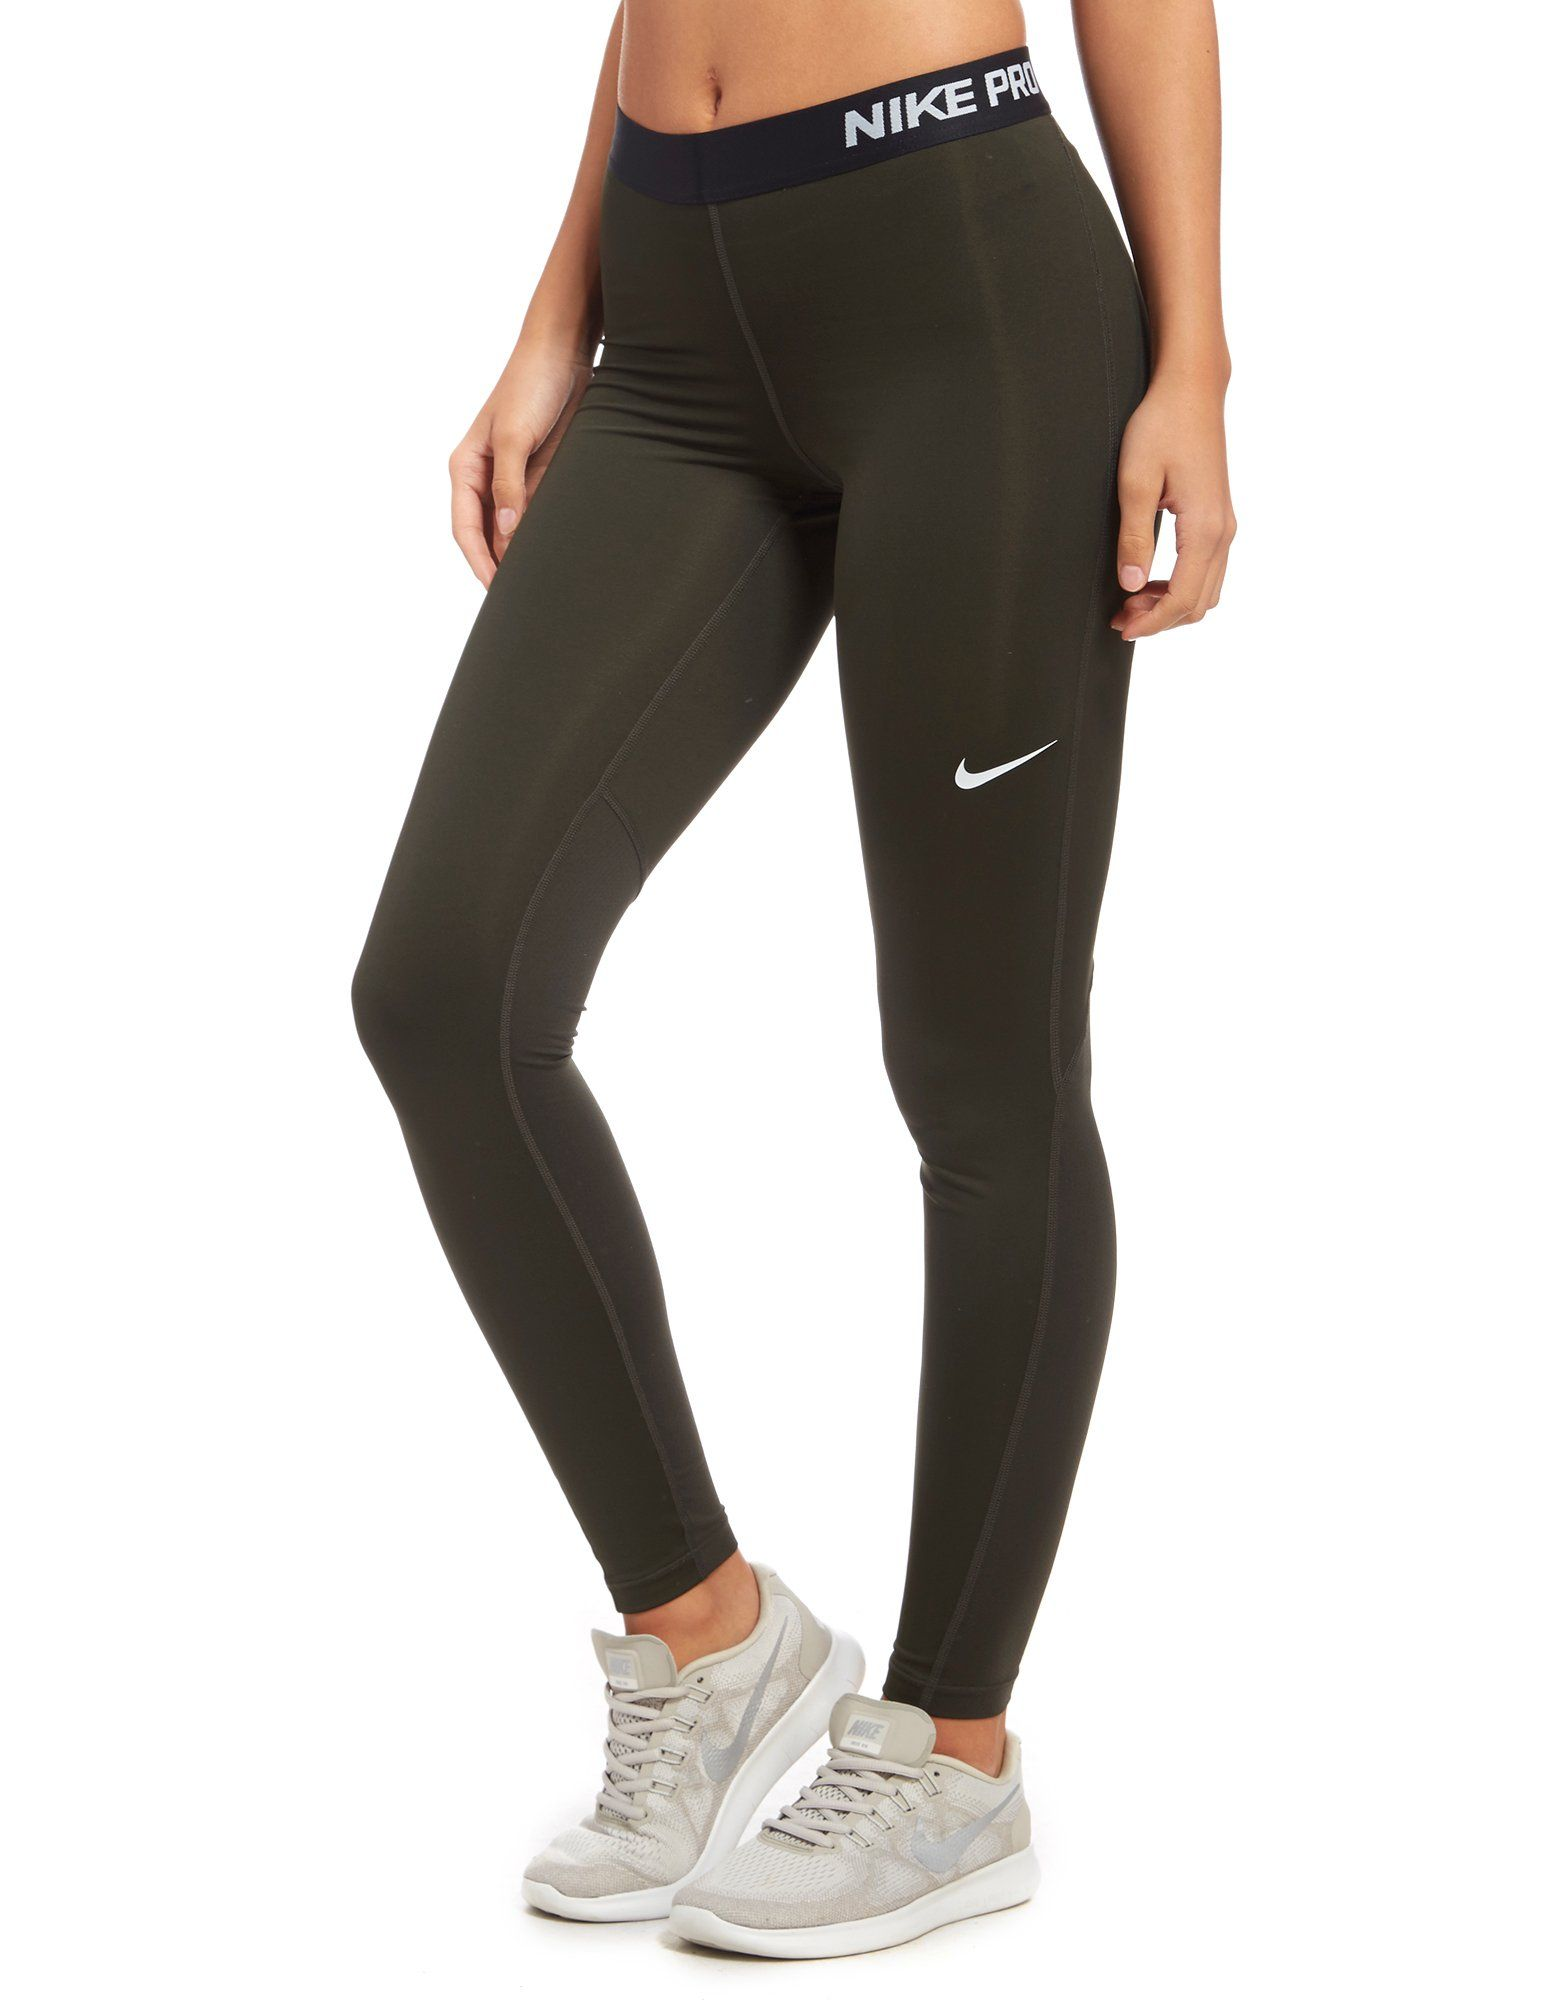 nike pro training leggings jd sports. Black Bedroom Furniture Sets. Home Design Ideas